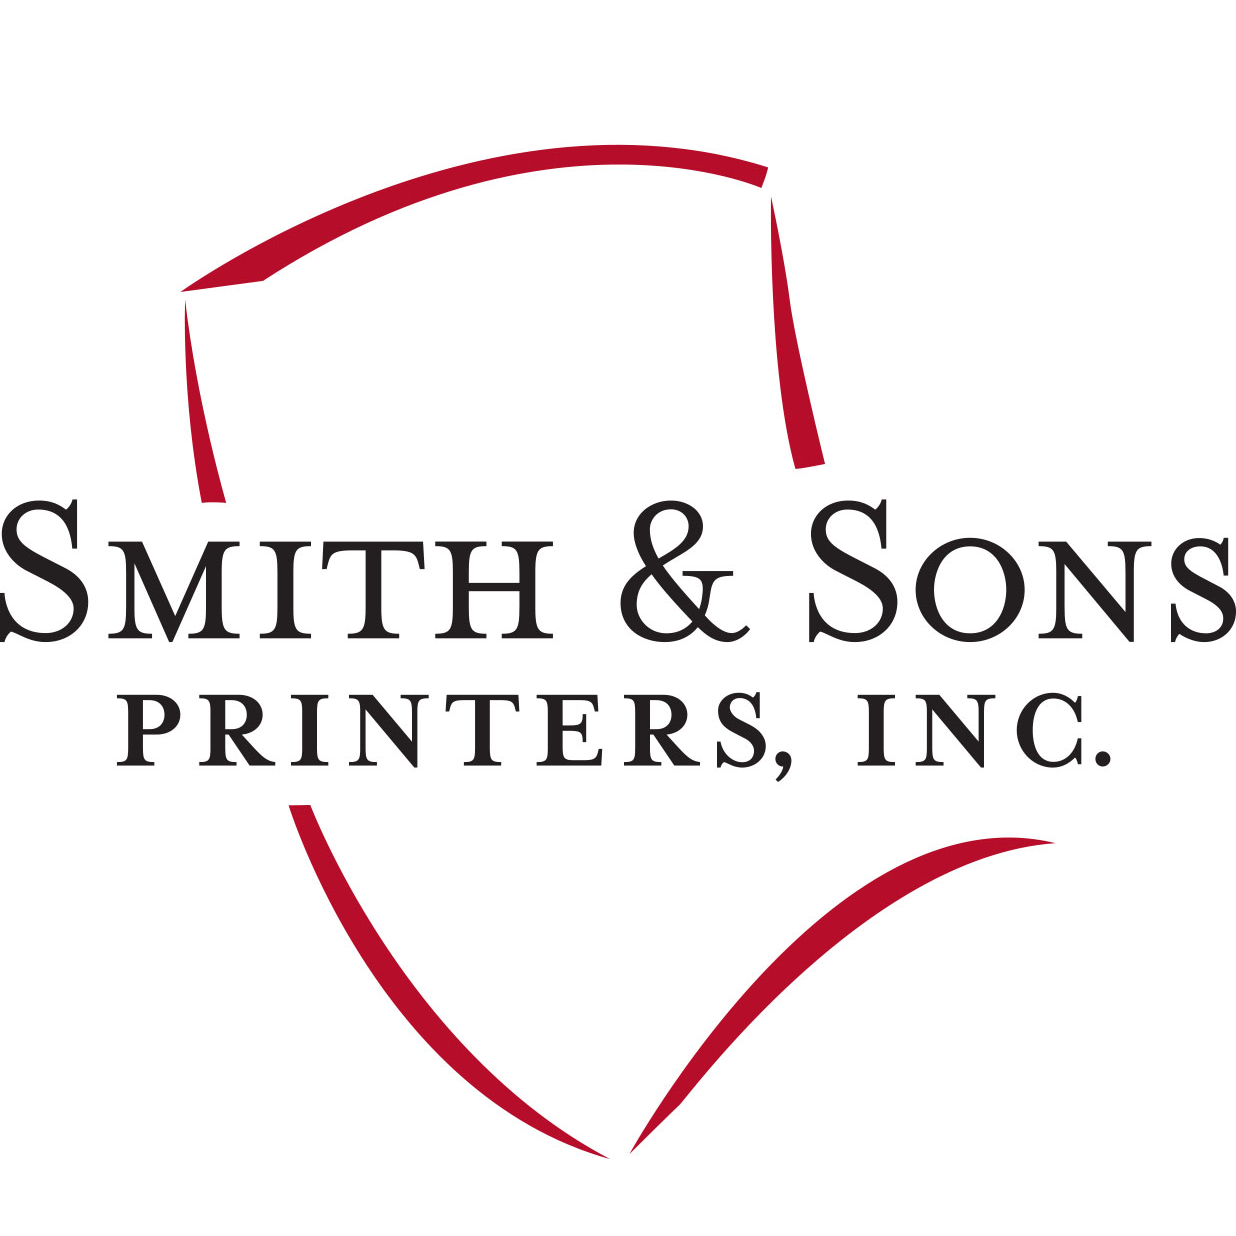 Smith sons printers inc 6403 rutledge pike knoxville tn hotels nearby reheart Gallery